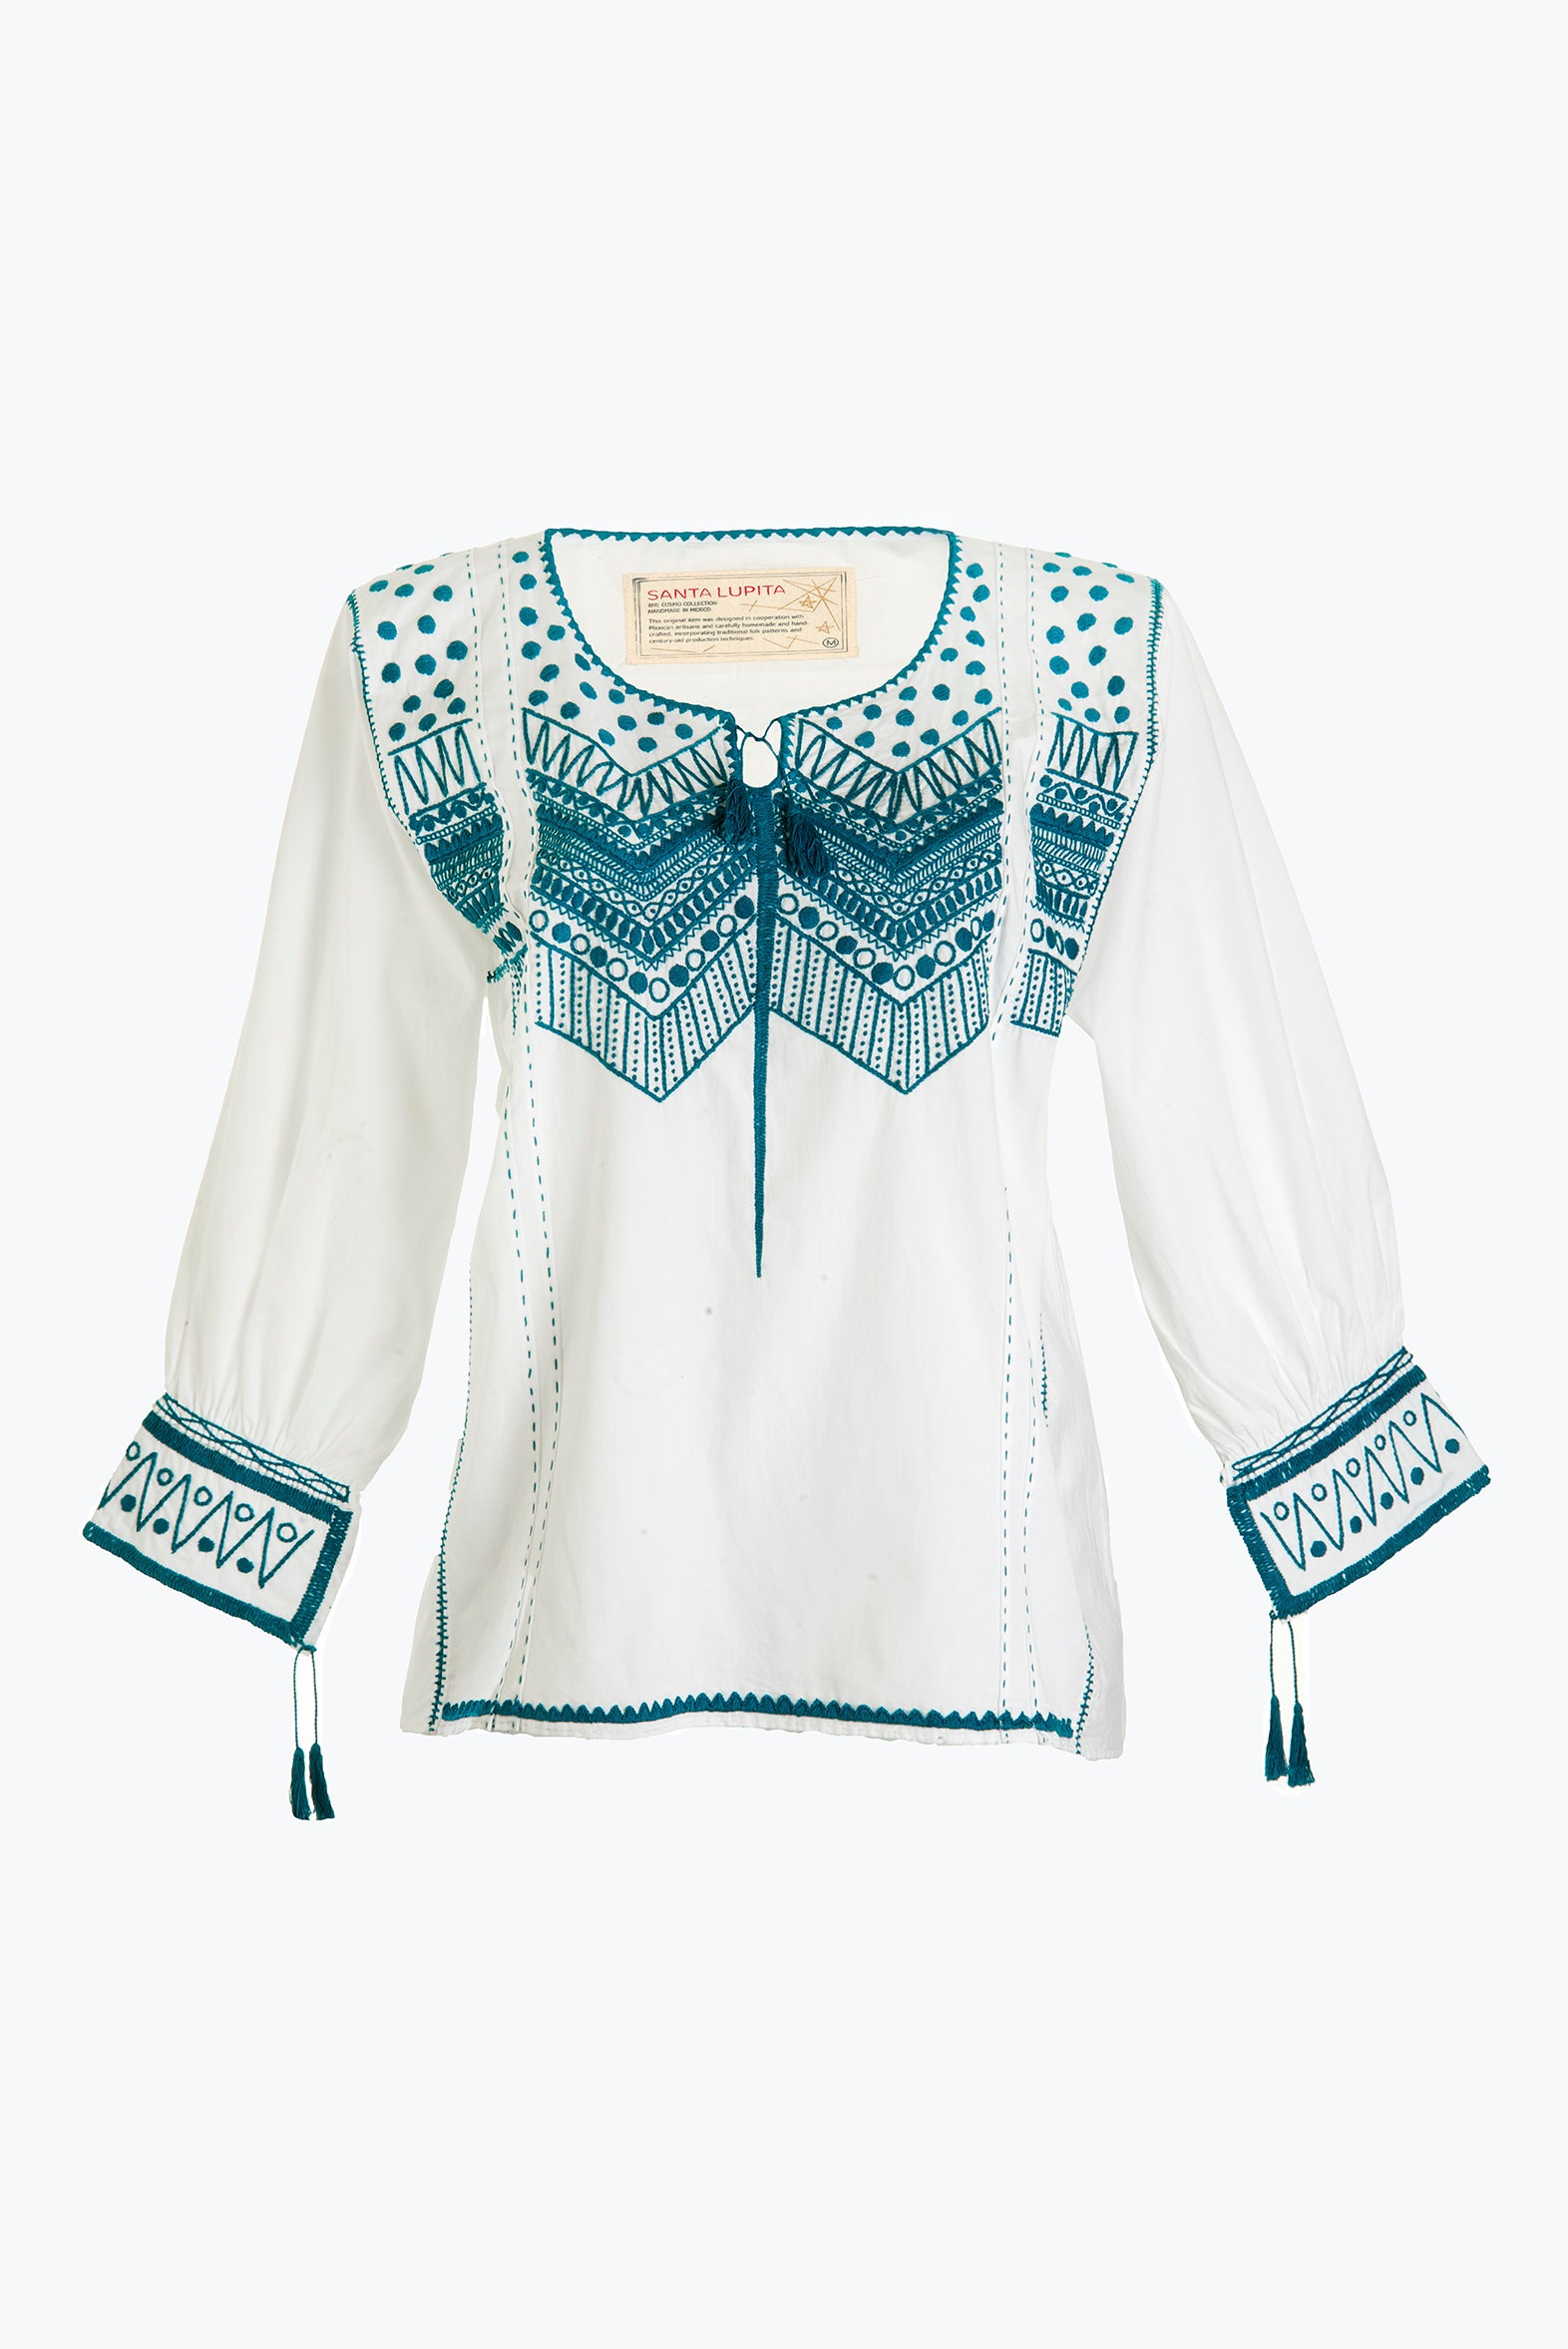 THE COSMO DAY BLOUSE